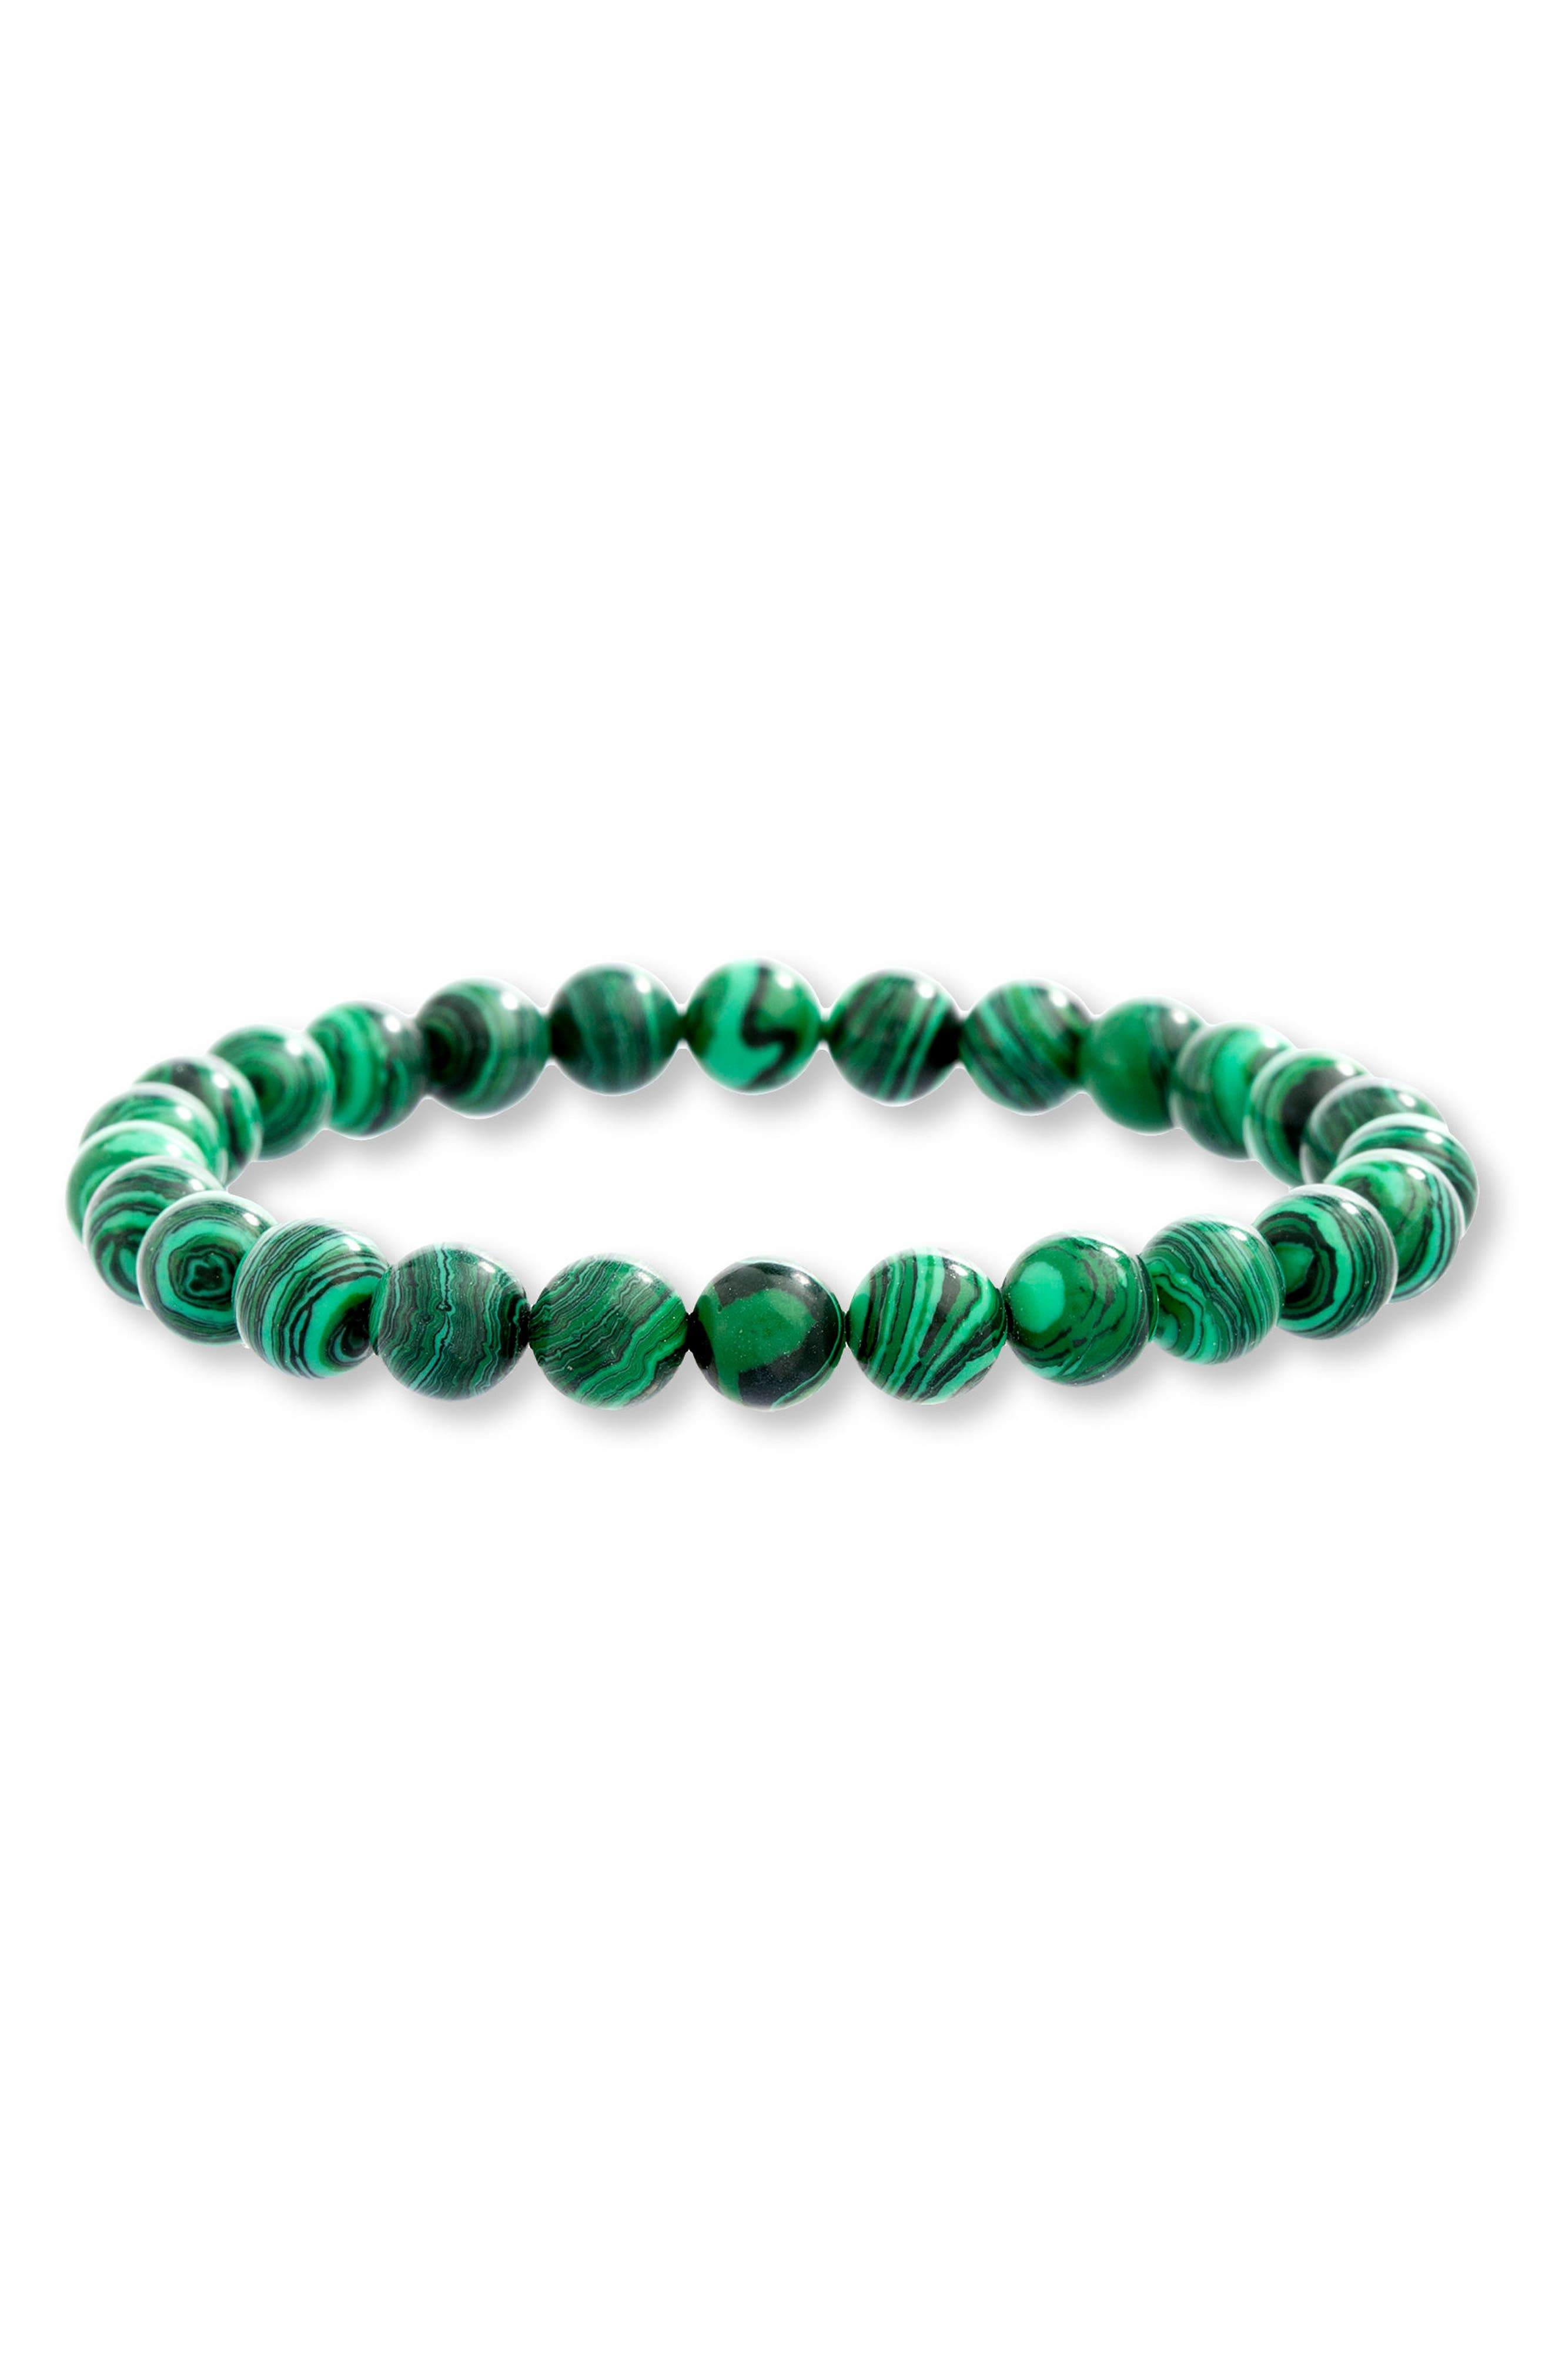 Malachite Bead Bracelet,                             Alternate thumbnail 2, color,                             300